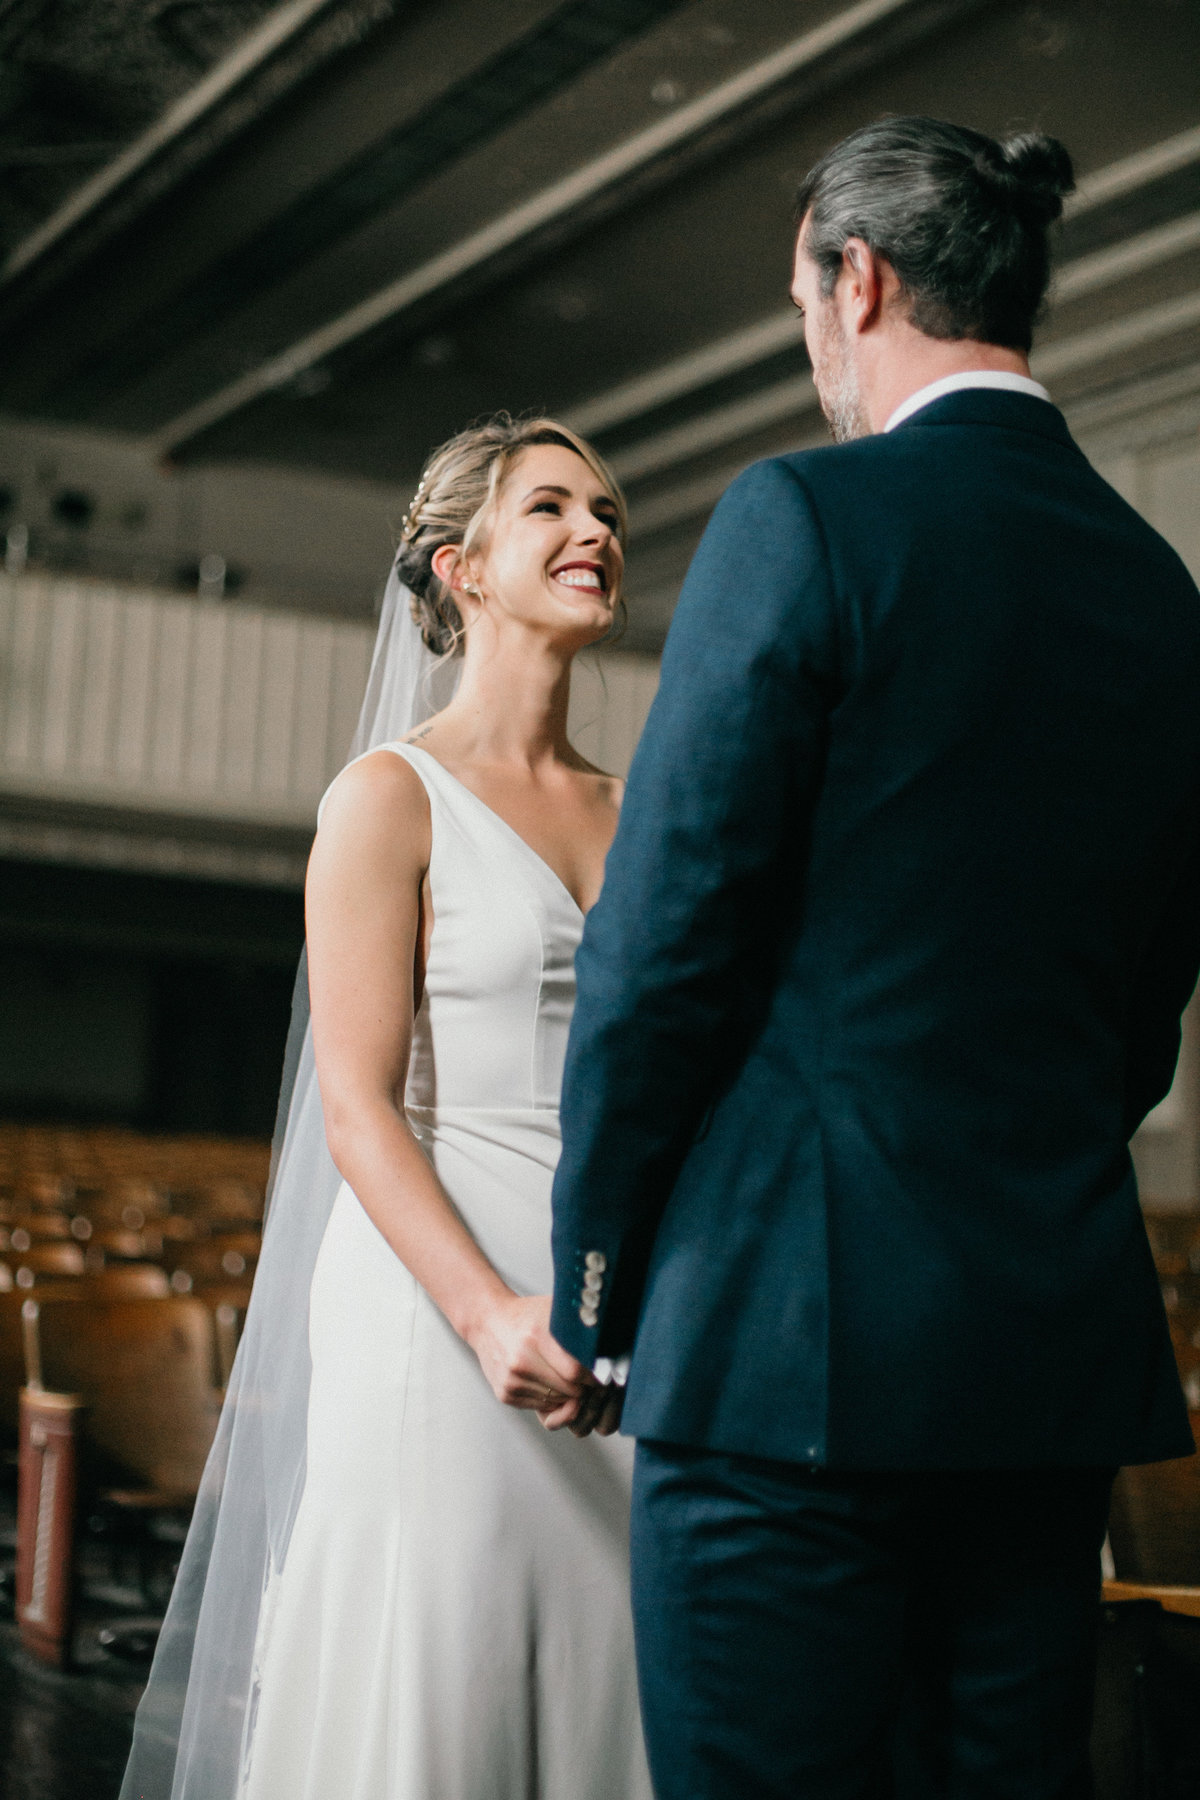 Bride and groom photographed together in this unique and  industrial Philadelphia wedding venue.